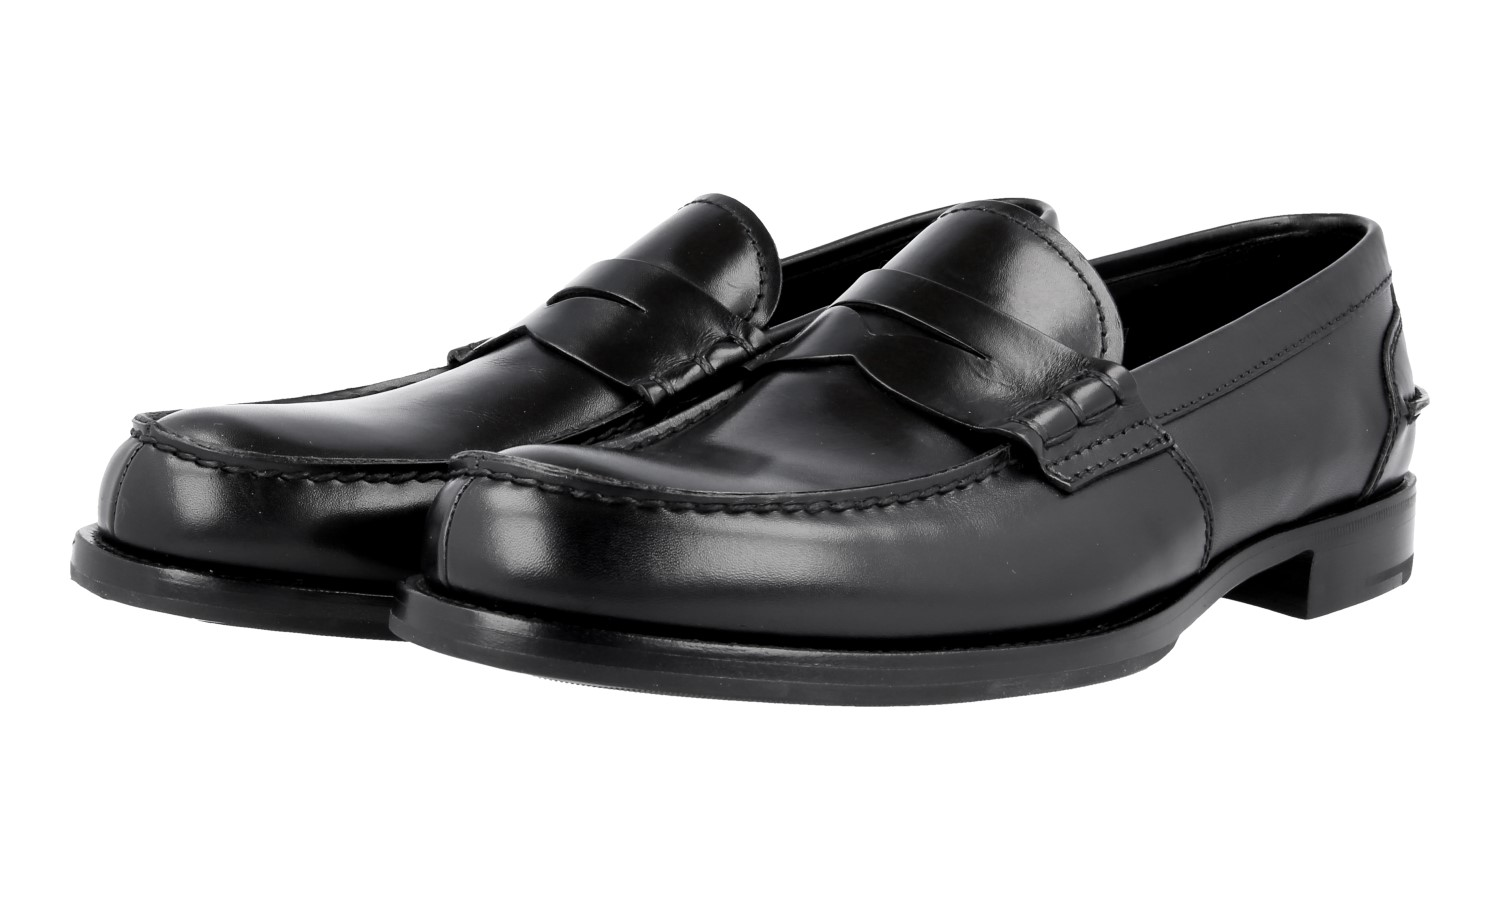 0374ef0d0edf Details about AUTH LUXURY MIU MIU PENNY LOAFER SHOES DNC089 BLACK NEW US 8  EU 41 41